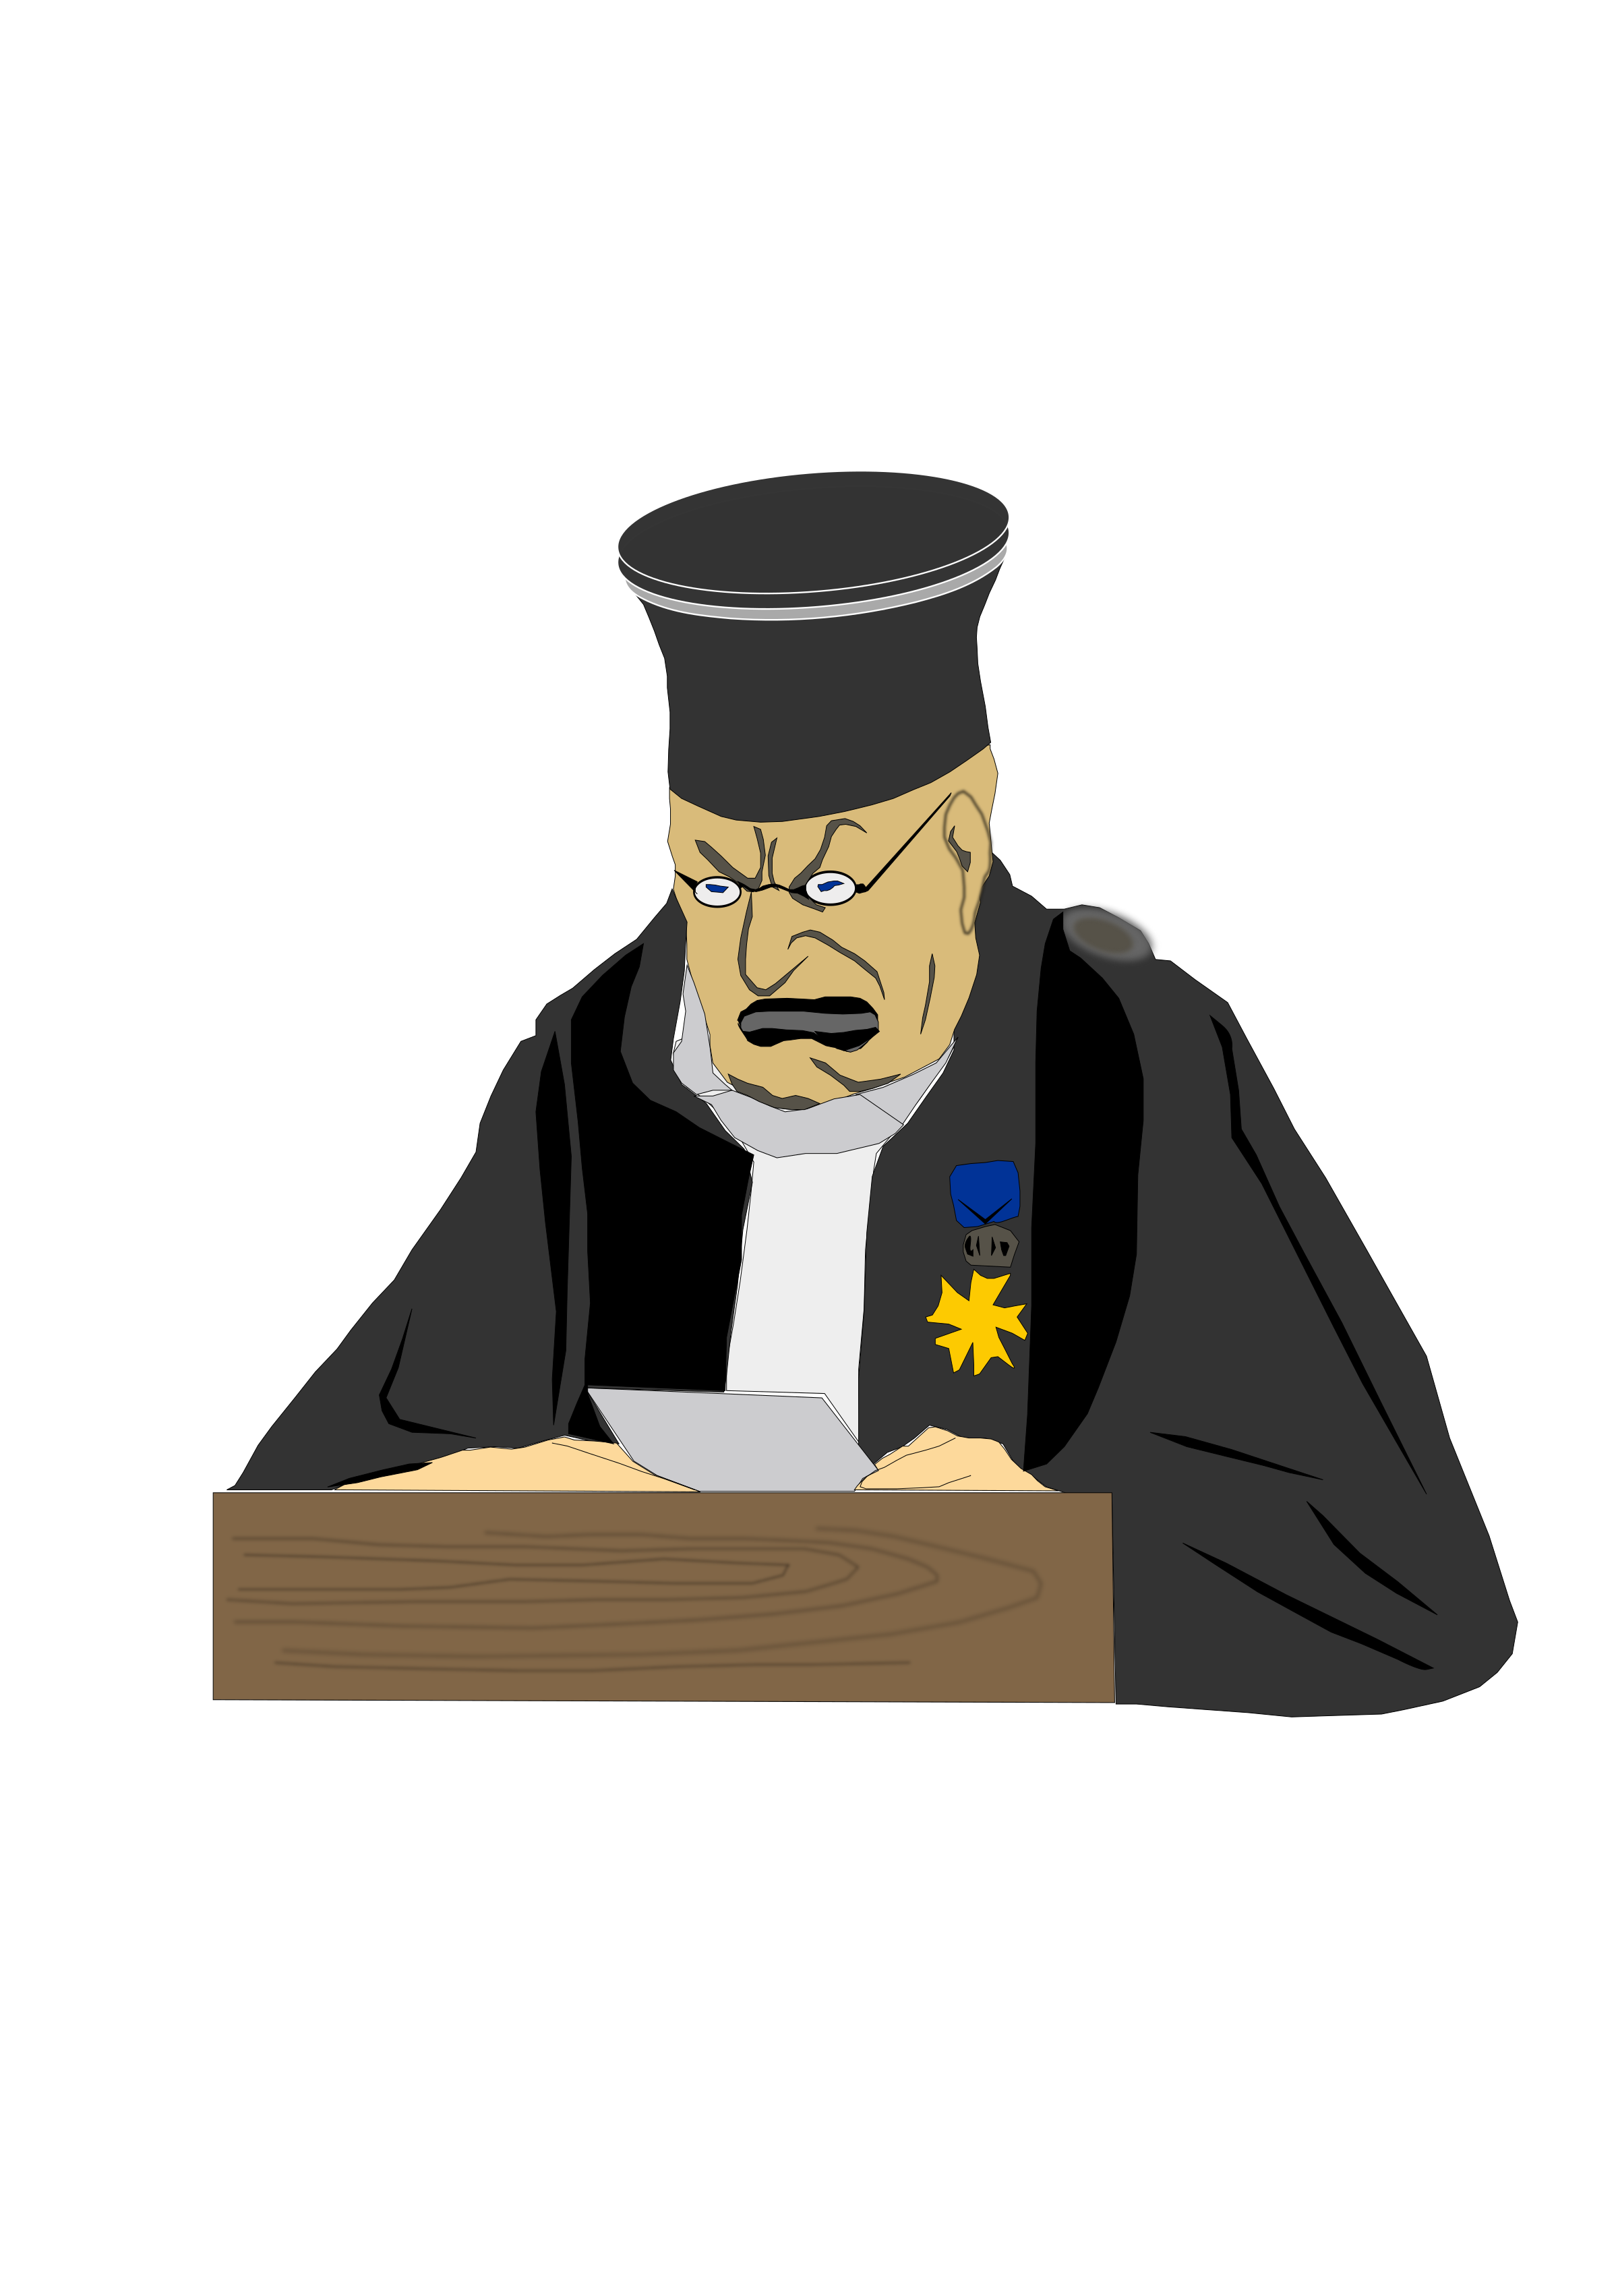 The icons png free. Judge clipart cartoon